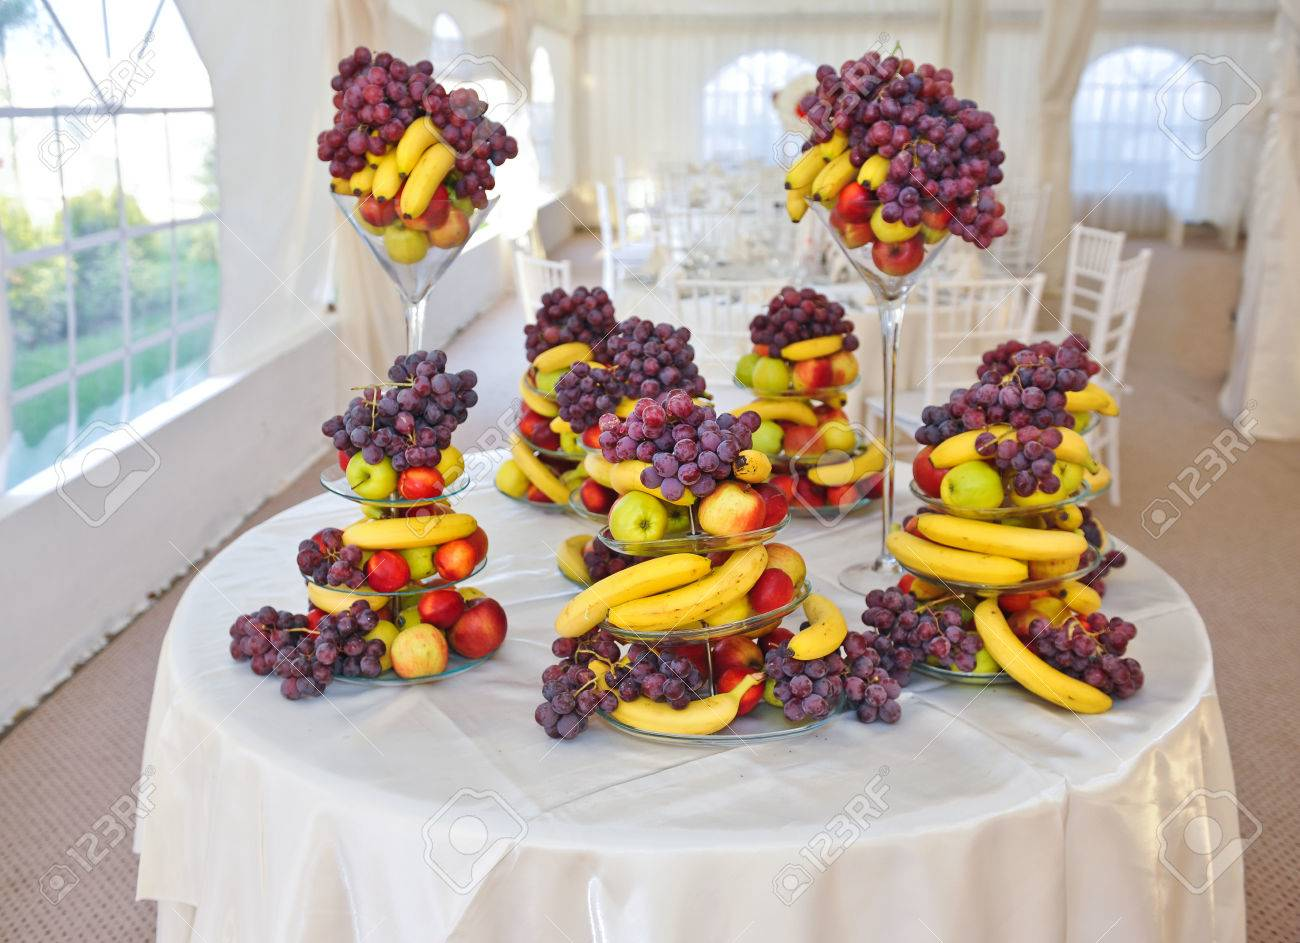 Fruits arrangement on restaurant table wedding decoration with fruits arrangement on restaurant table wedding decoration with fruits bananas grapes and apples stock junglespirit Image collections